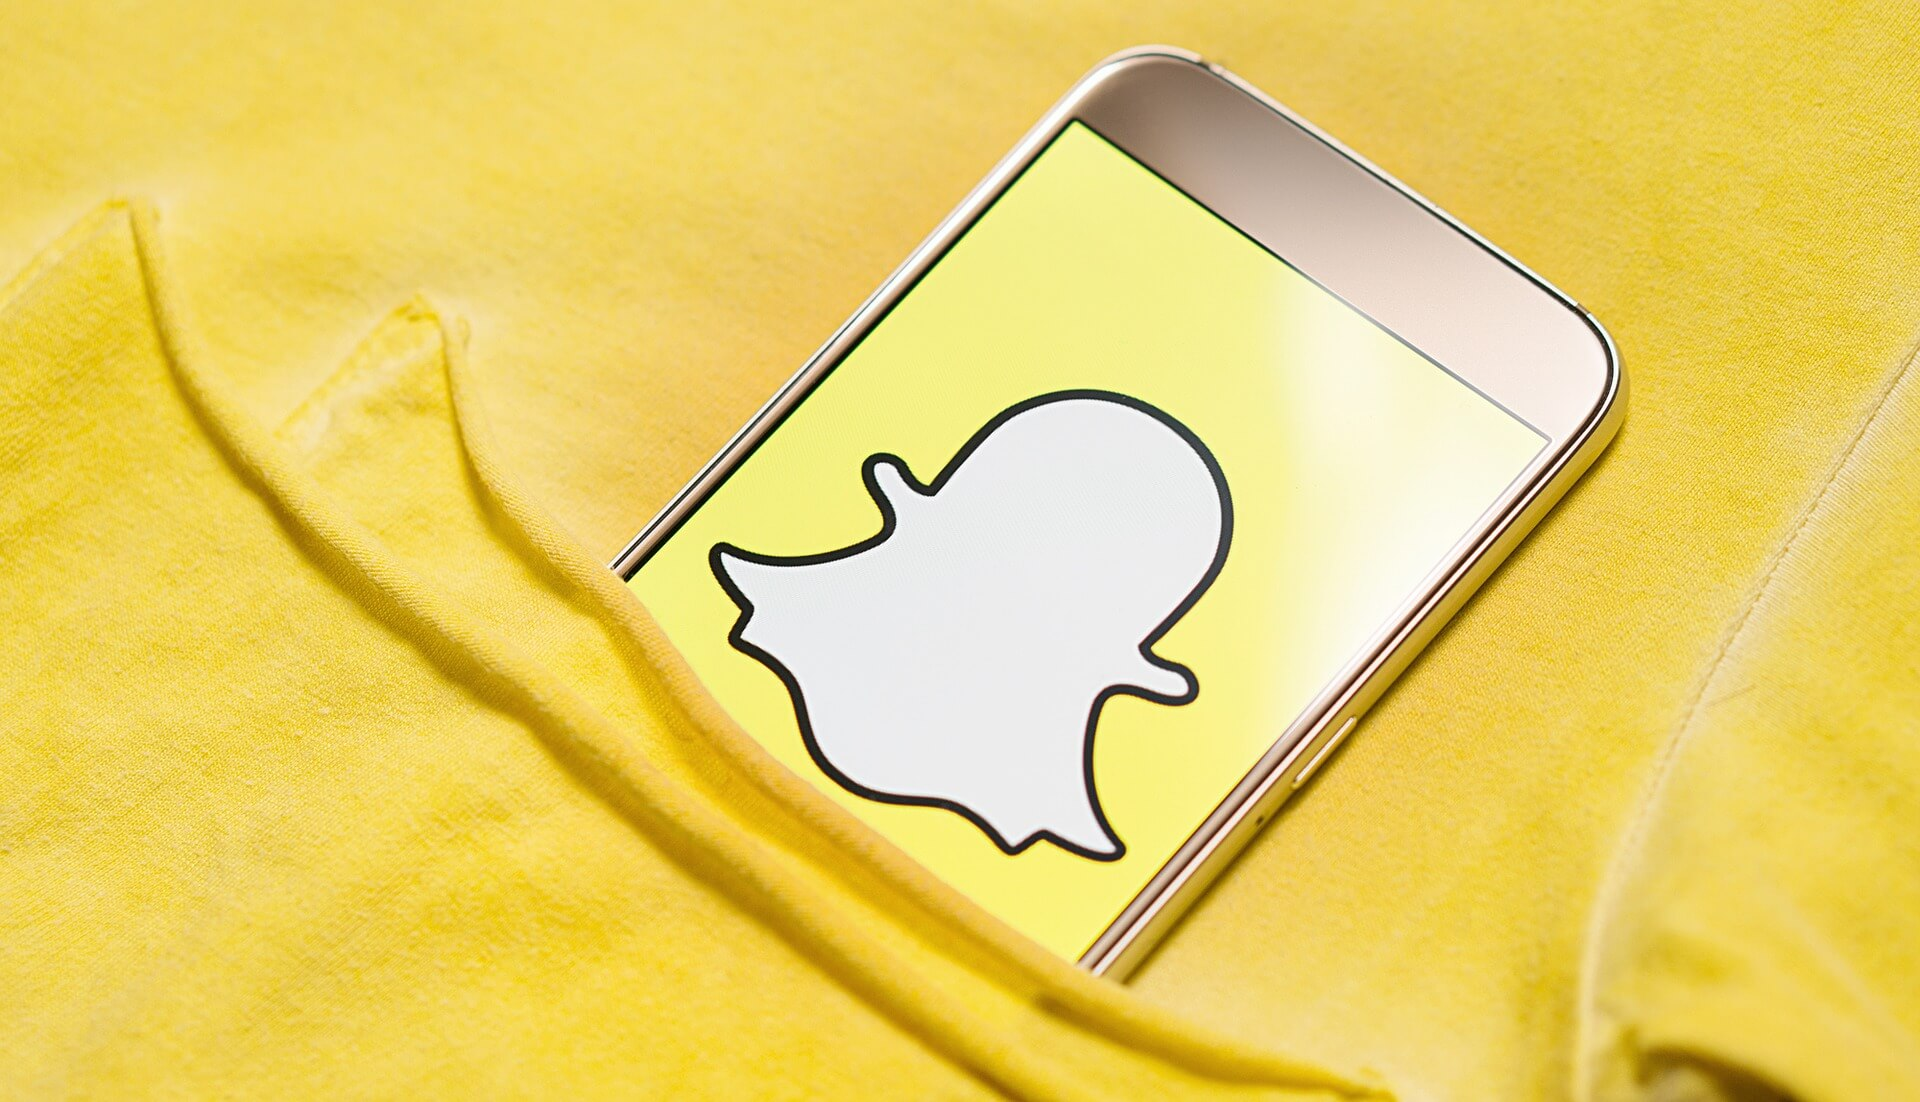 Snapchat: Proof that Startups Need D&O Insurance